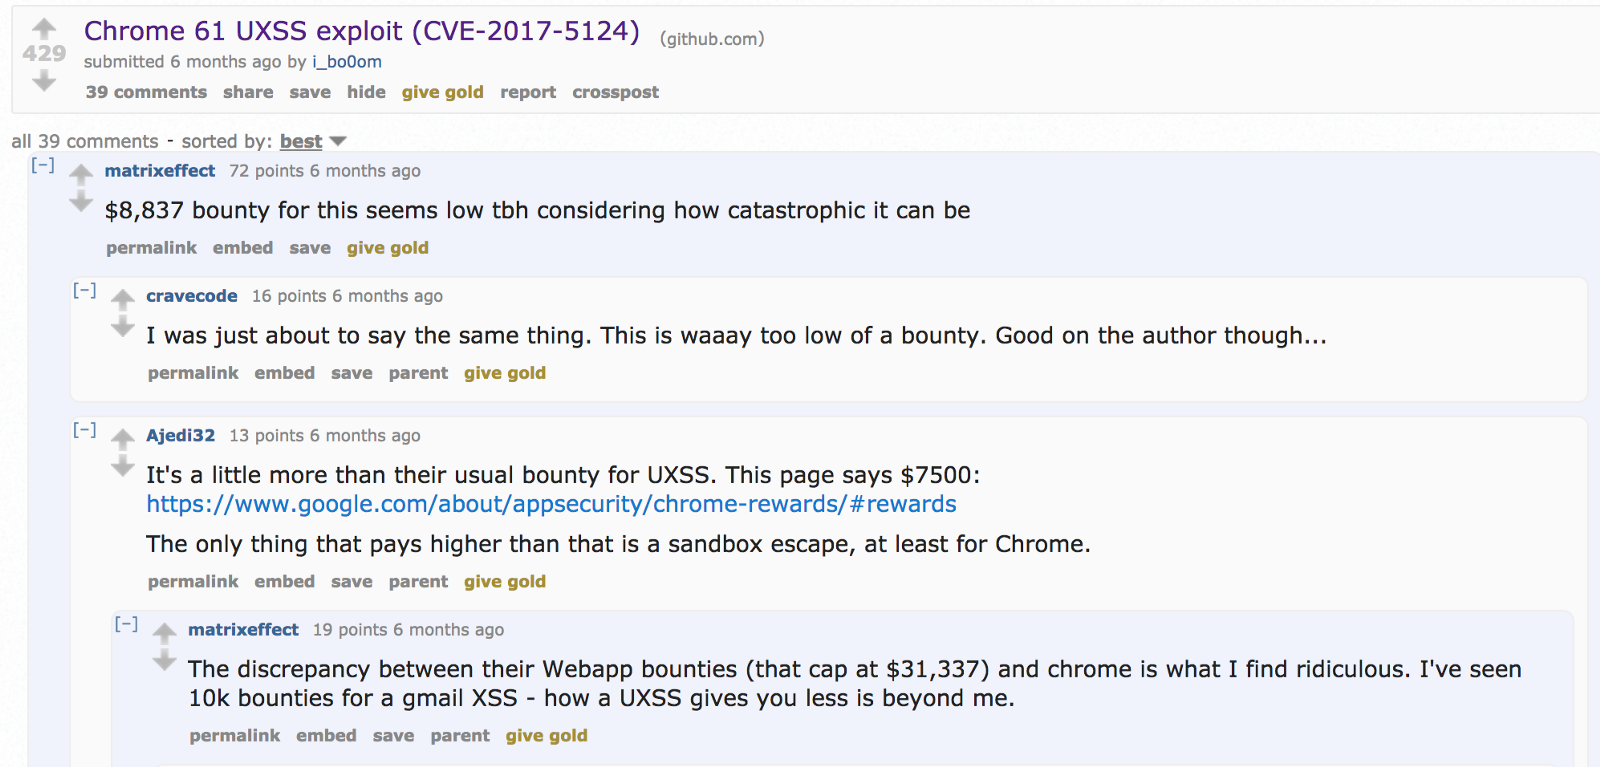 Your privacy costs ~$7500  - By